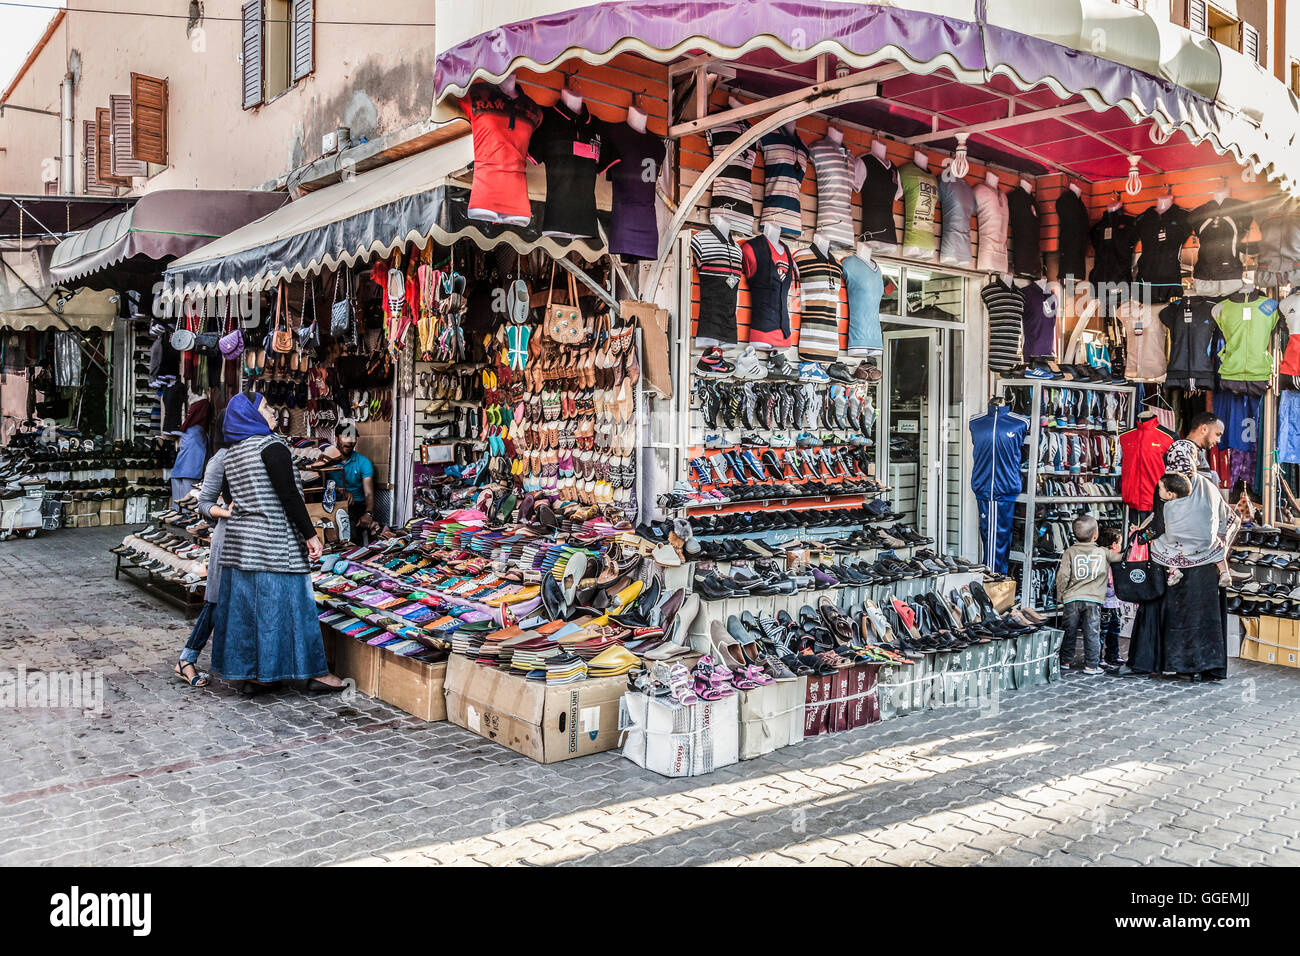 Vendor & shoppers at a linked group of stalls selling shoes, bags and sports clothes in a sreet in downtown - Stock Image